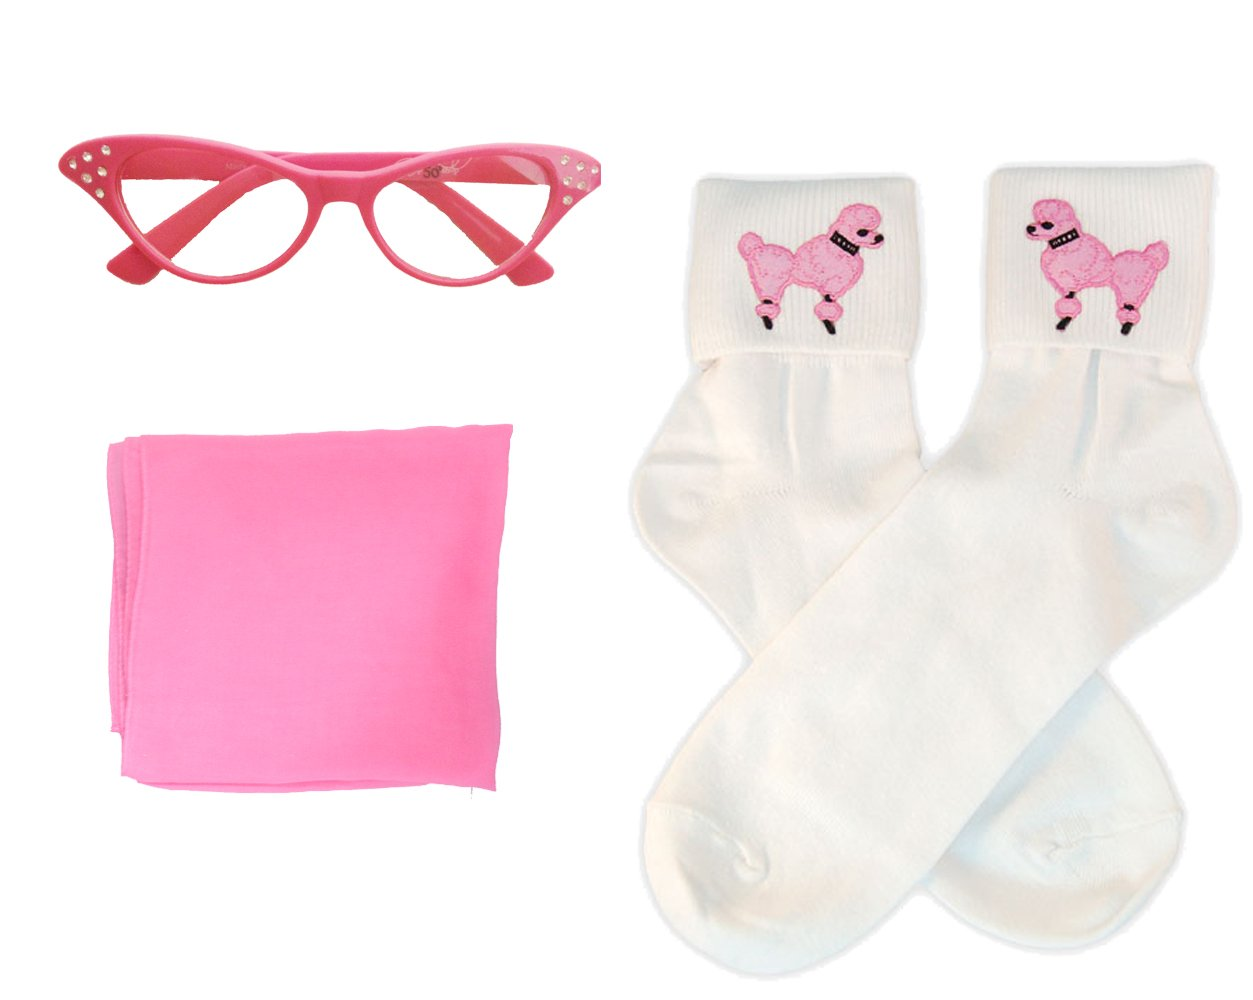 50s Costume Accessory Set Chiffon Scarf, Cat Eye Glasses and Bobby Socks for Women, Hot Pink